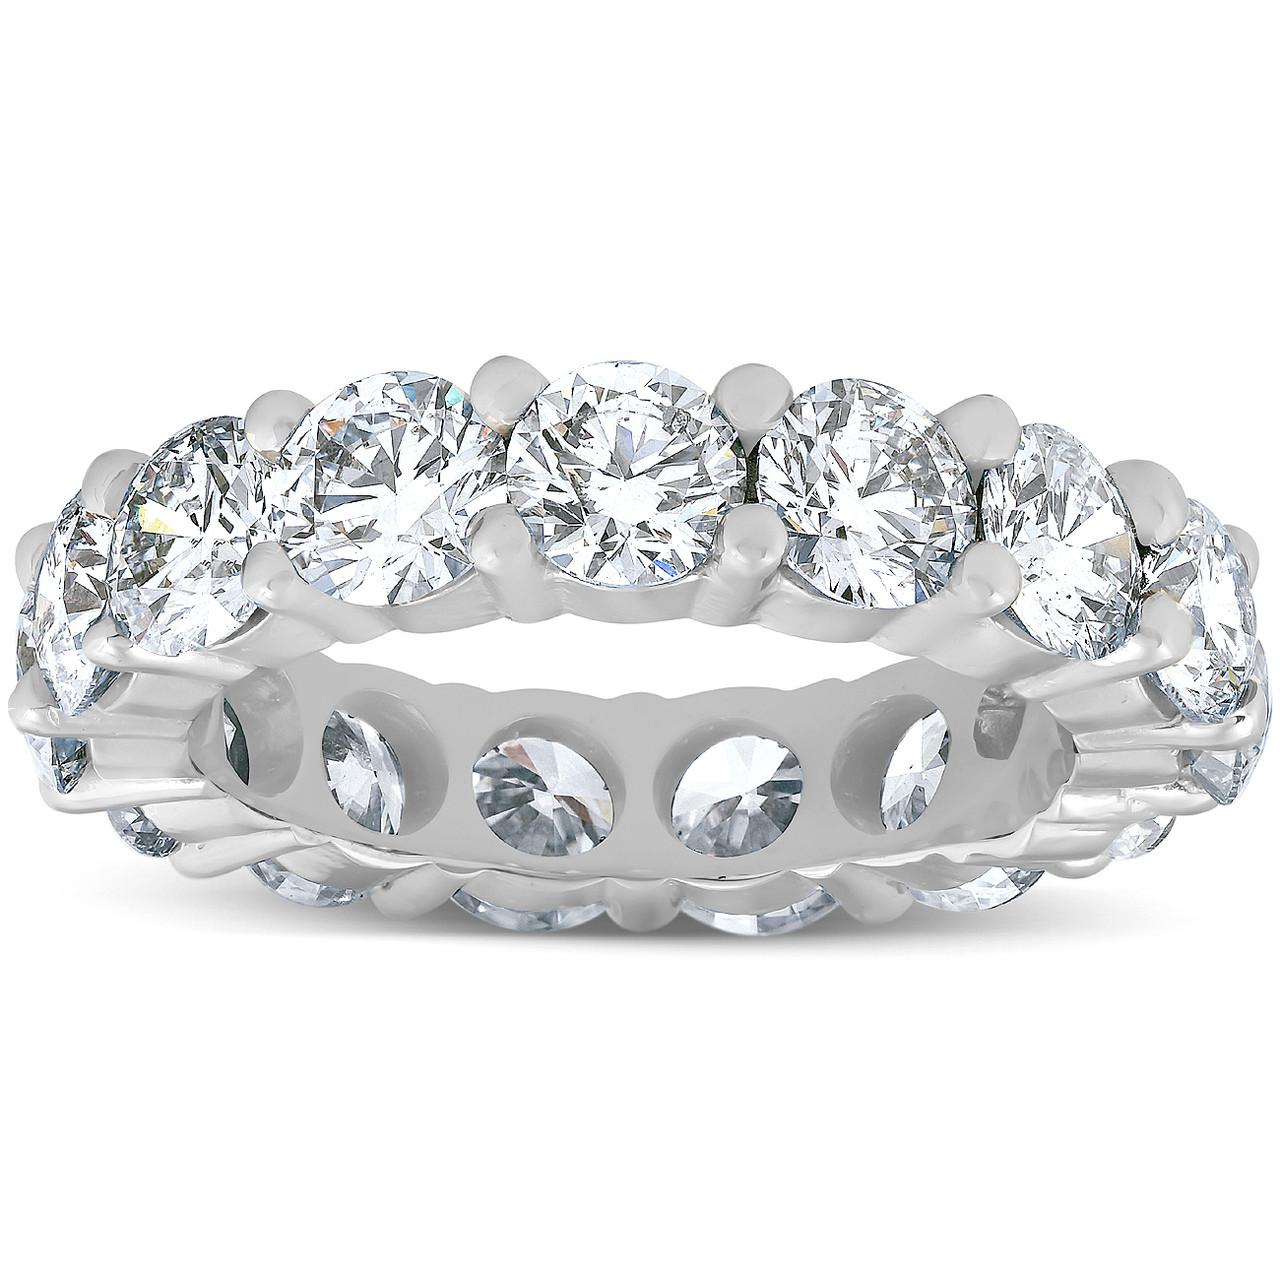 engagement ring eternity cut could settle pin band i bands dream carats for my cushion carat